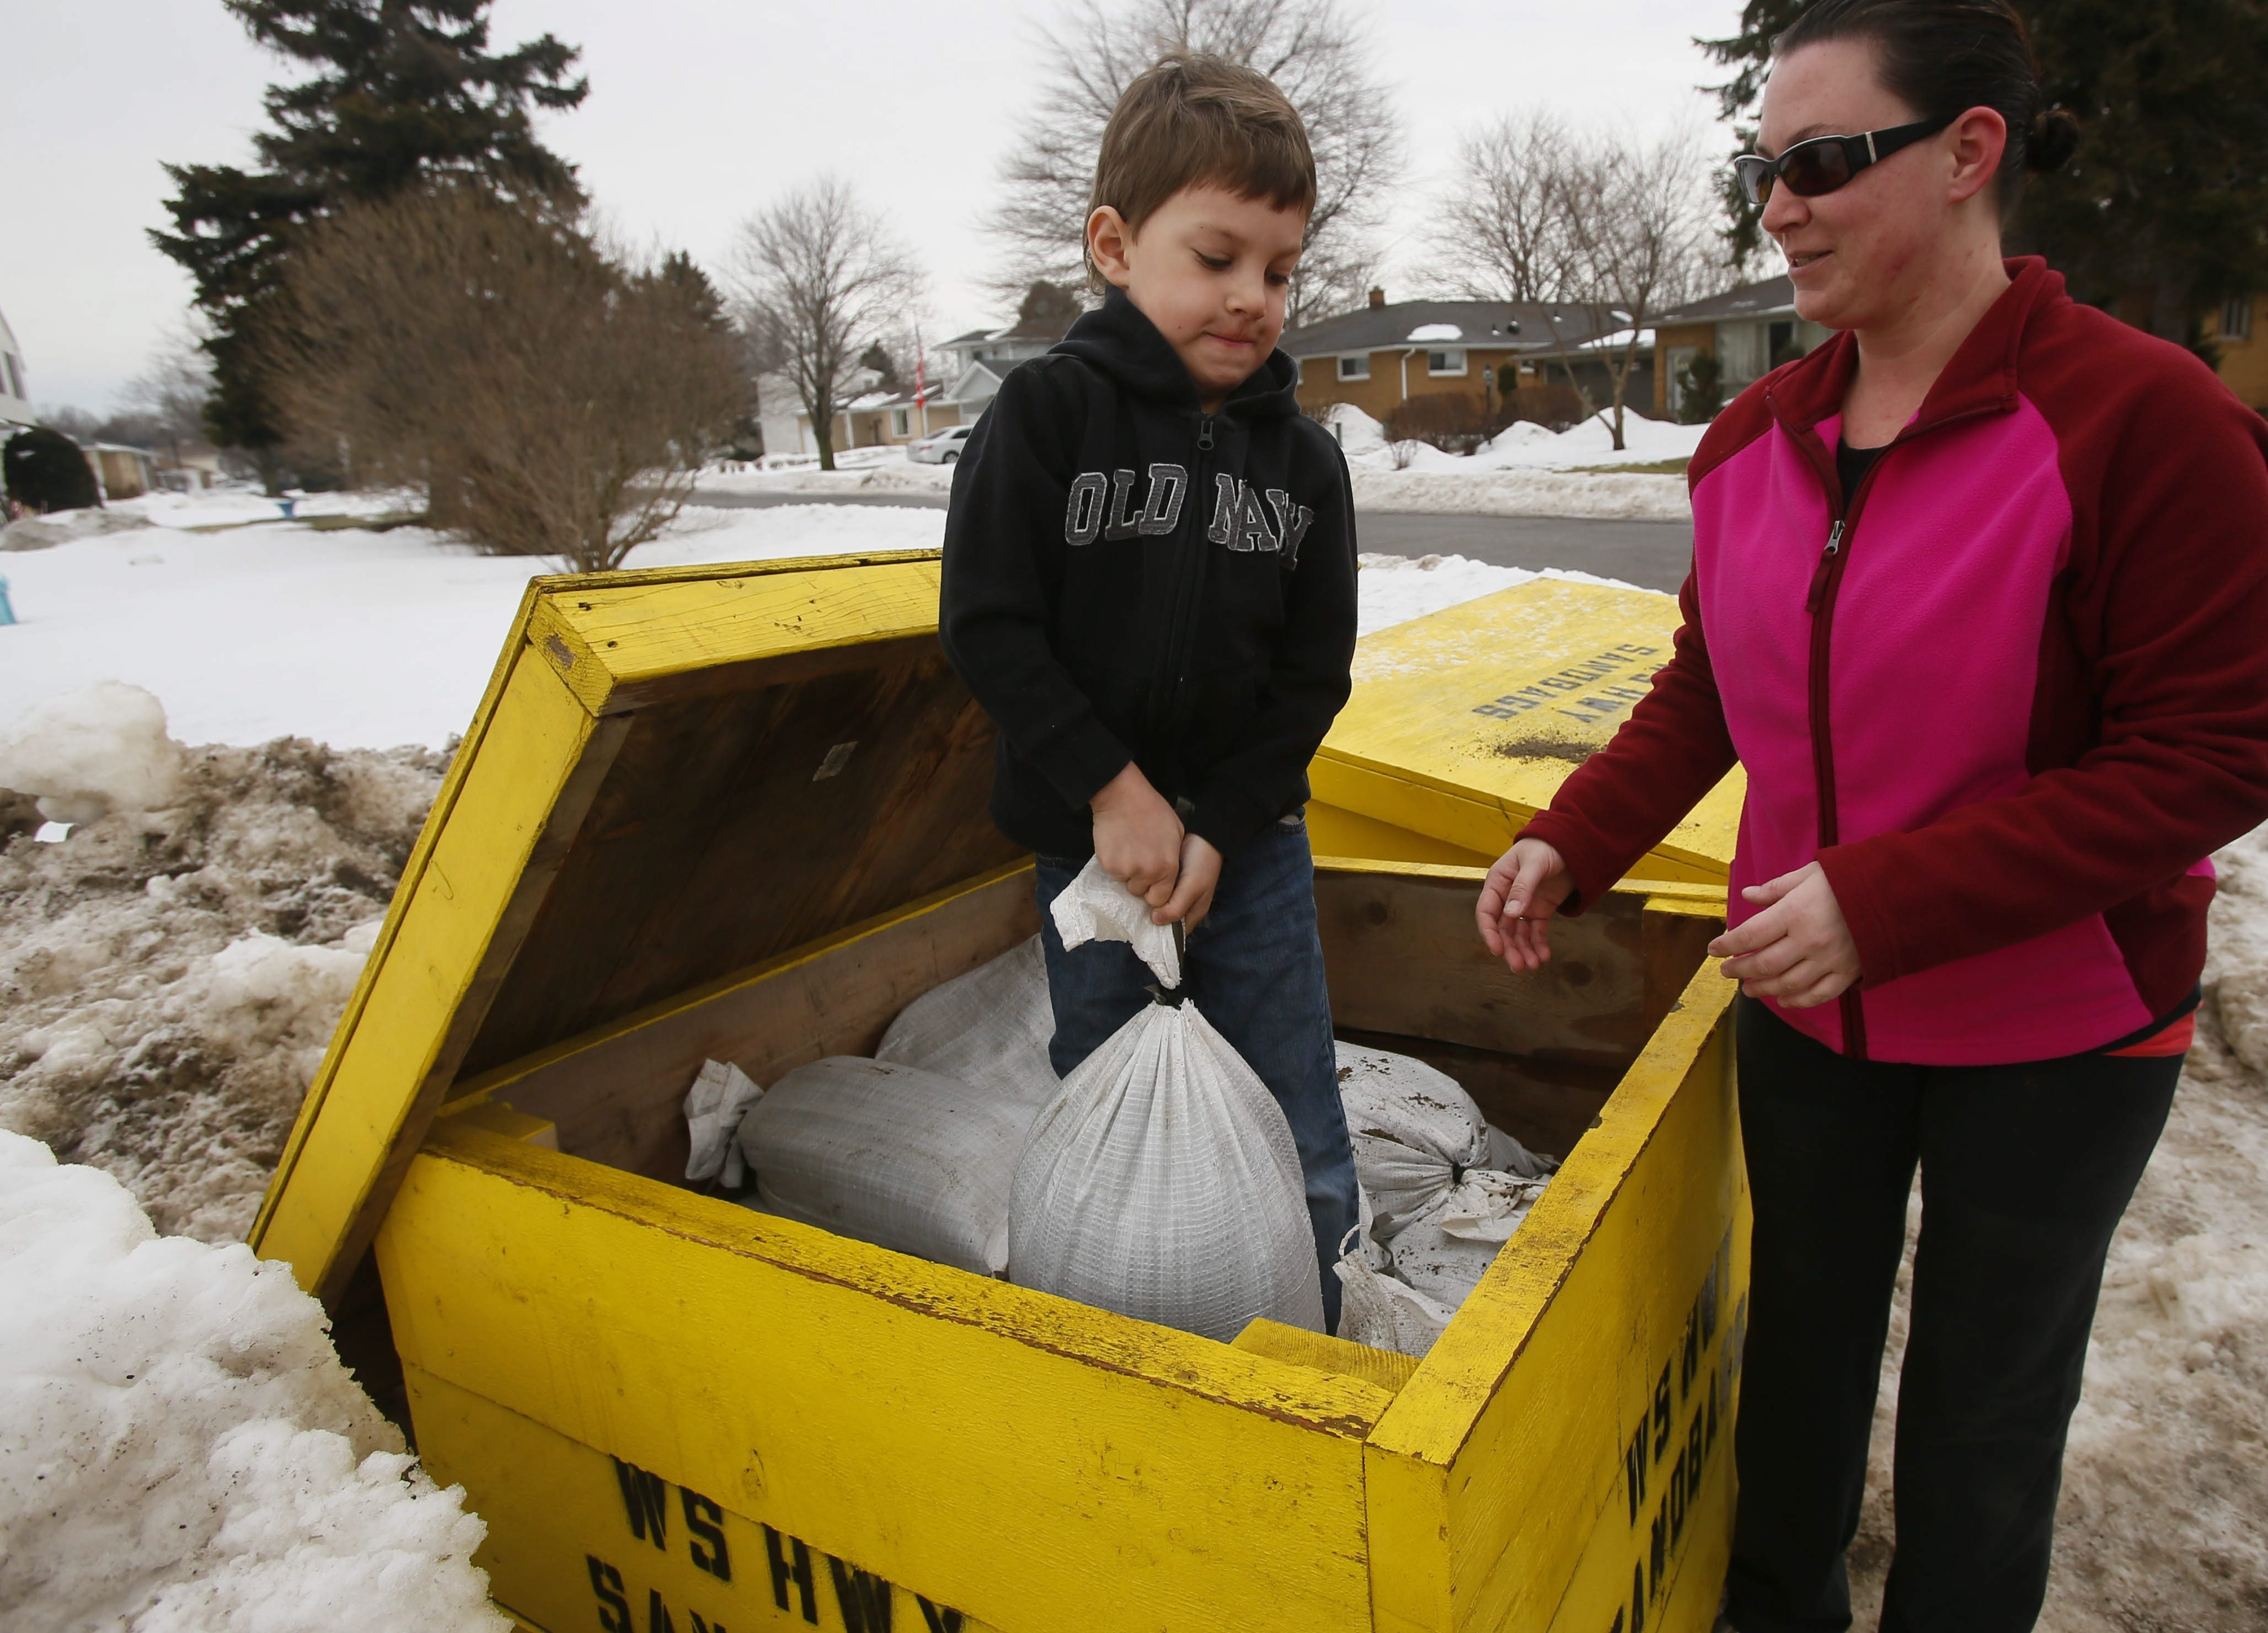 Damian Kazmierczak, 7, tries to lift a sandbag while helping his mother, Nicole Szablicki pick up sandbags made available by the West Seneca highway department in the Lexington Green neighborhood of West Seneca as residents prepare for the potential of flooding due to the warm temperatures.